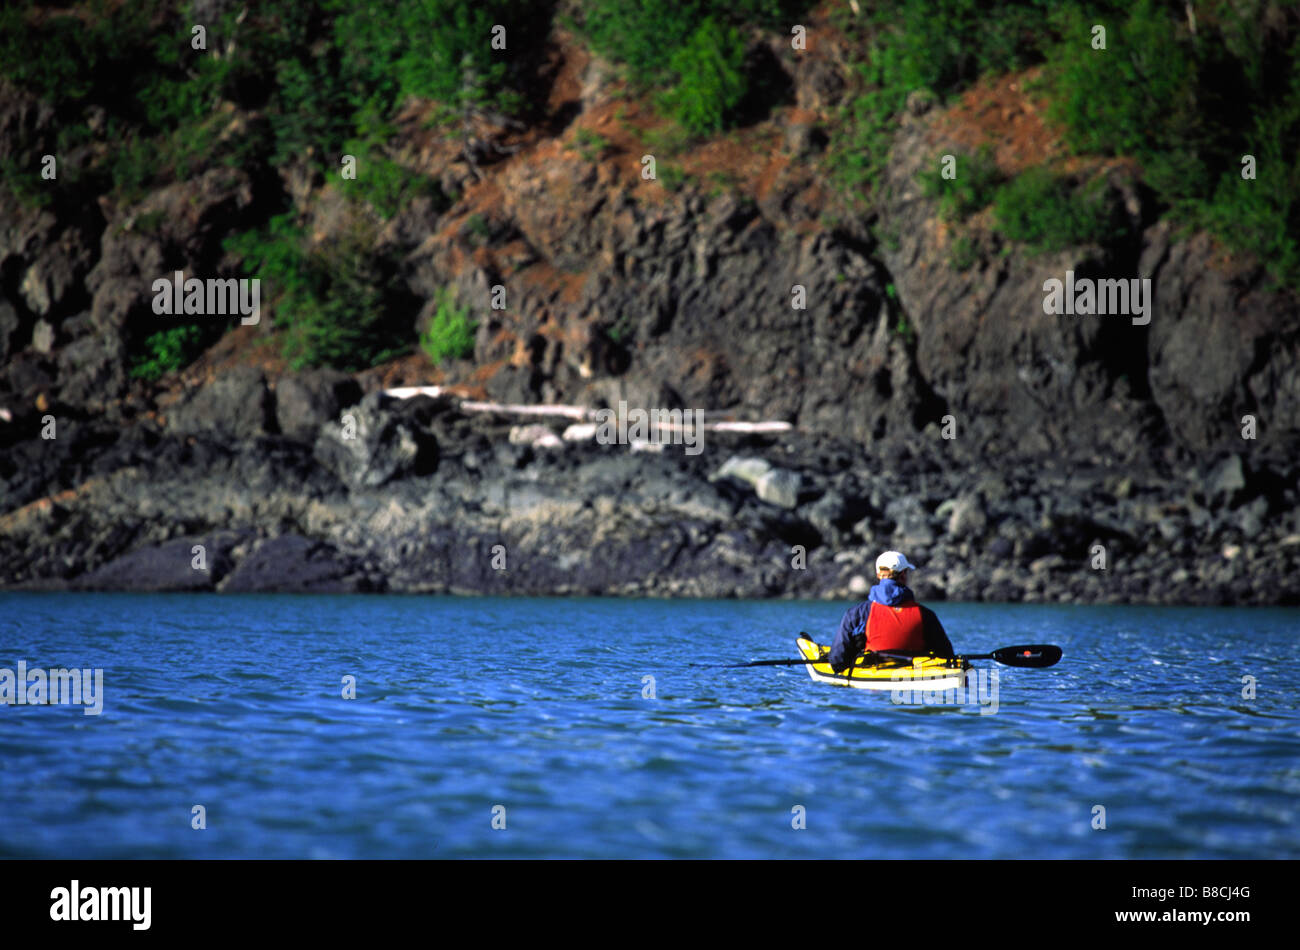 Kayaking Seduction Point, Haines, Alaska - Stock Image